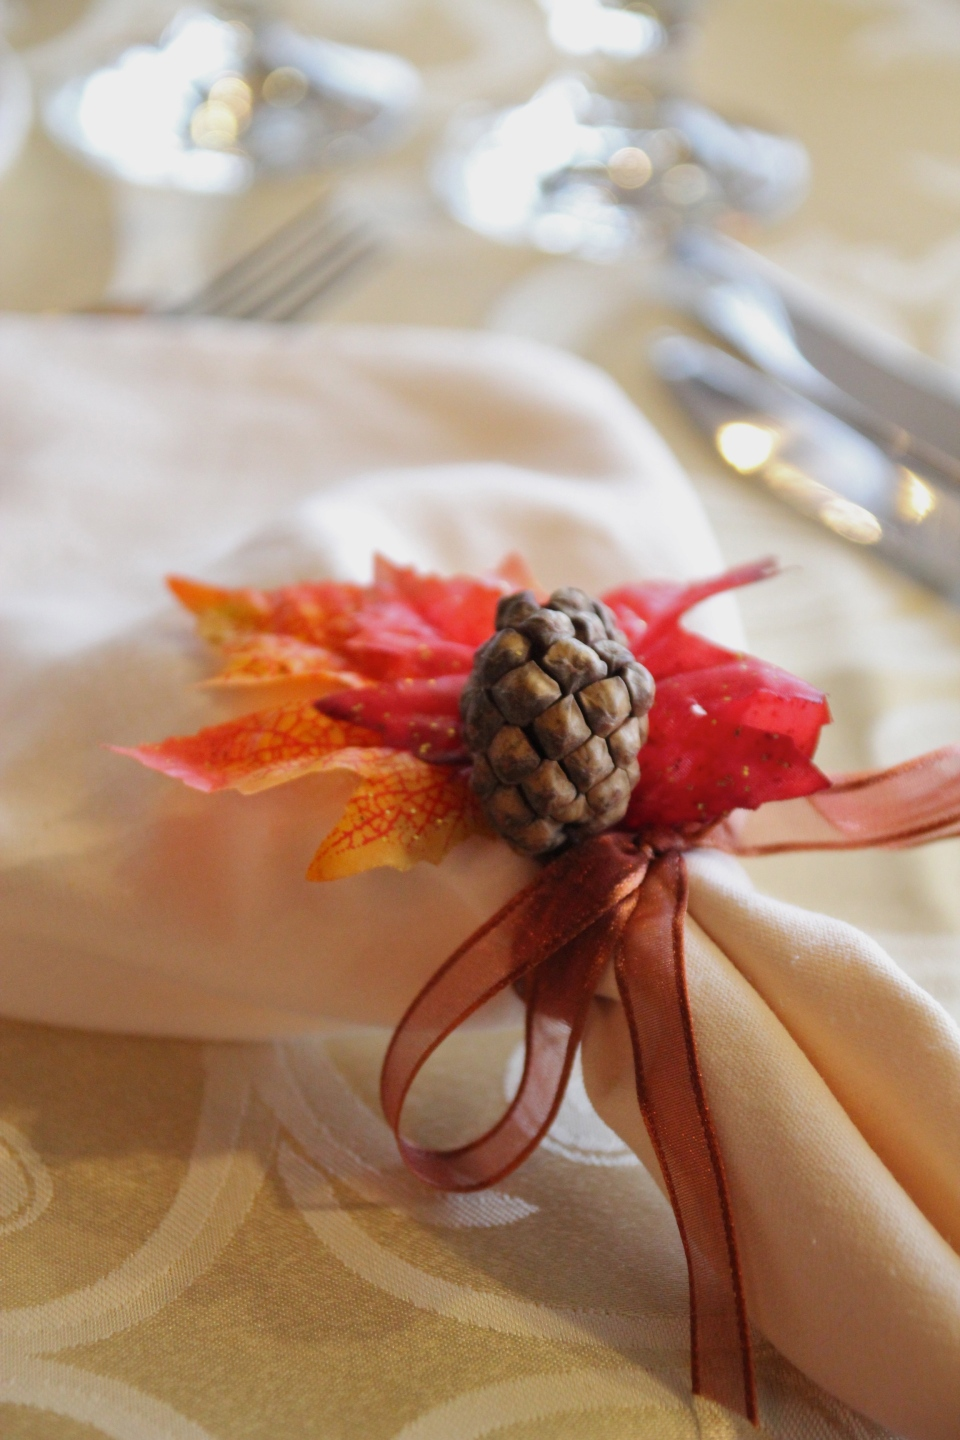 Autumn napkin rings were one of the details